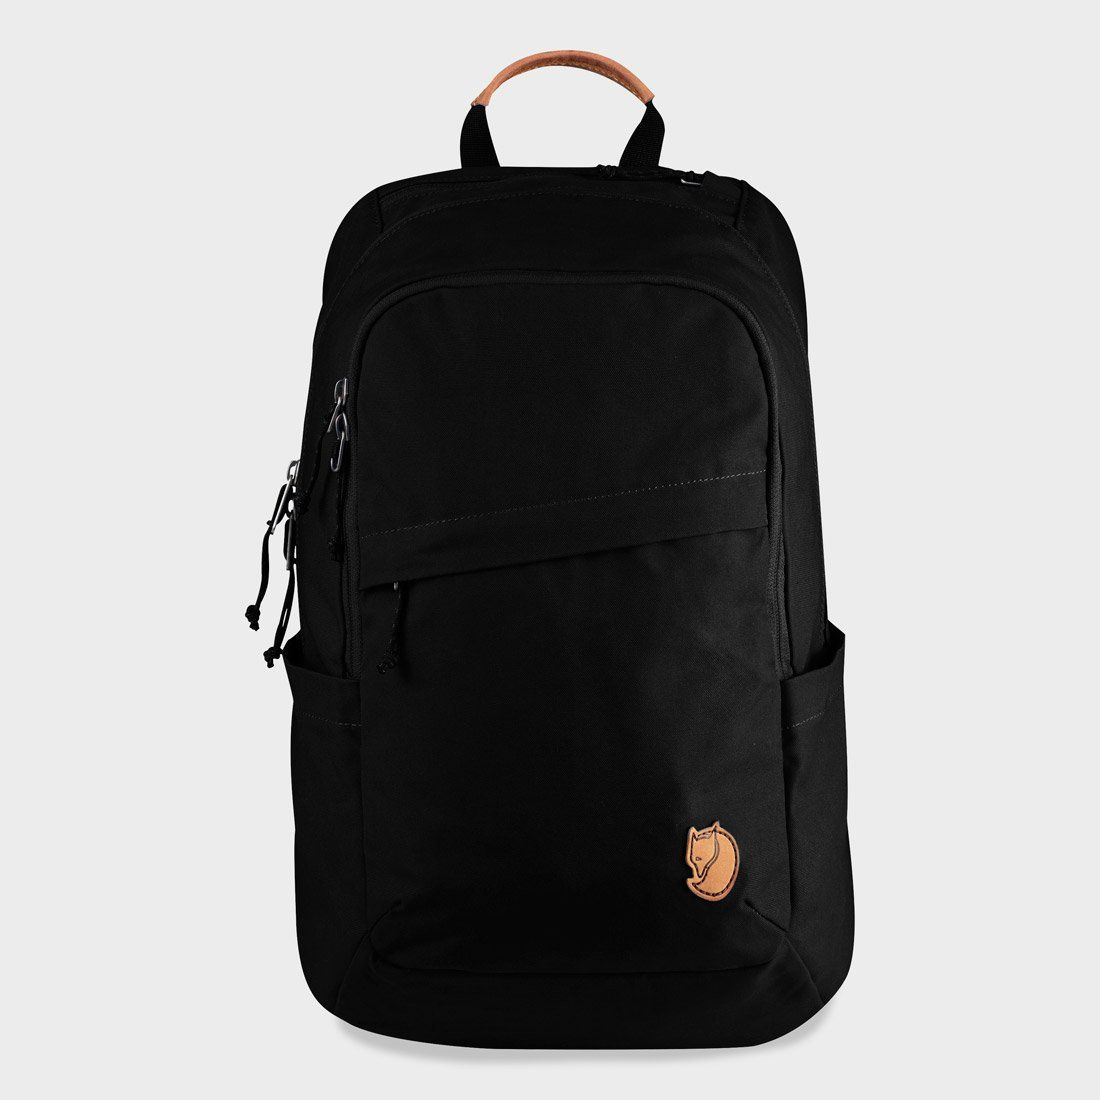 Fjallraven Raven 20 Backpack Black